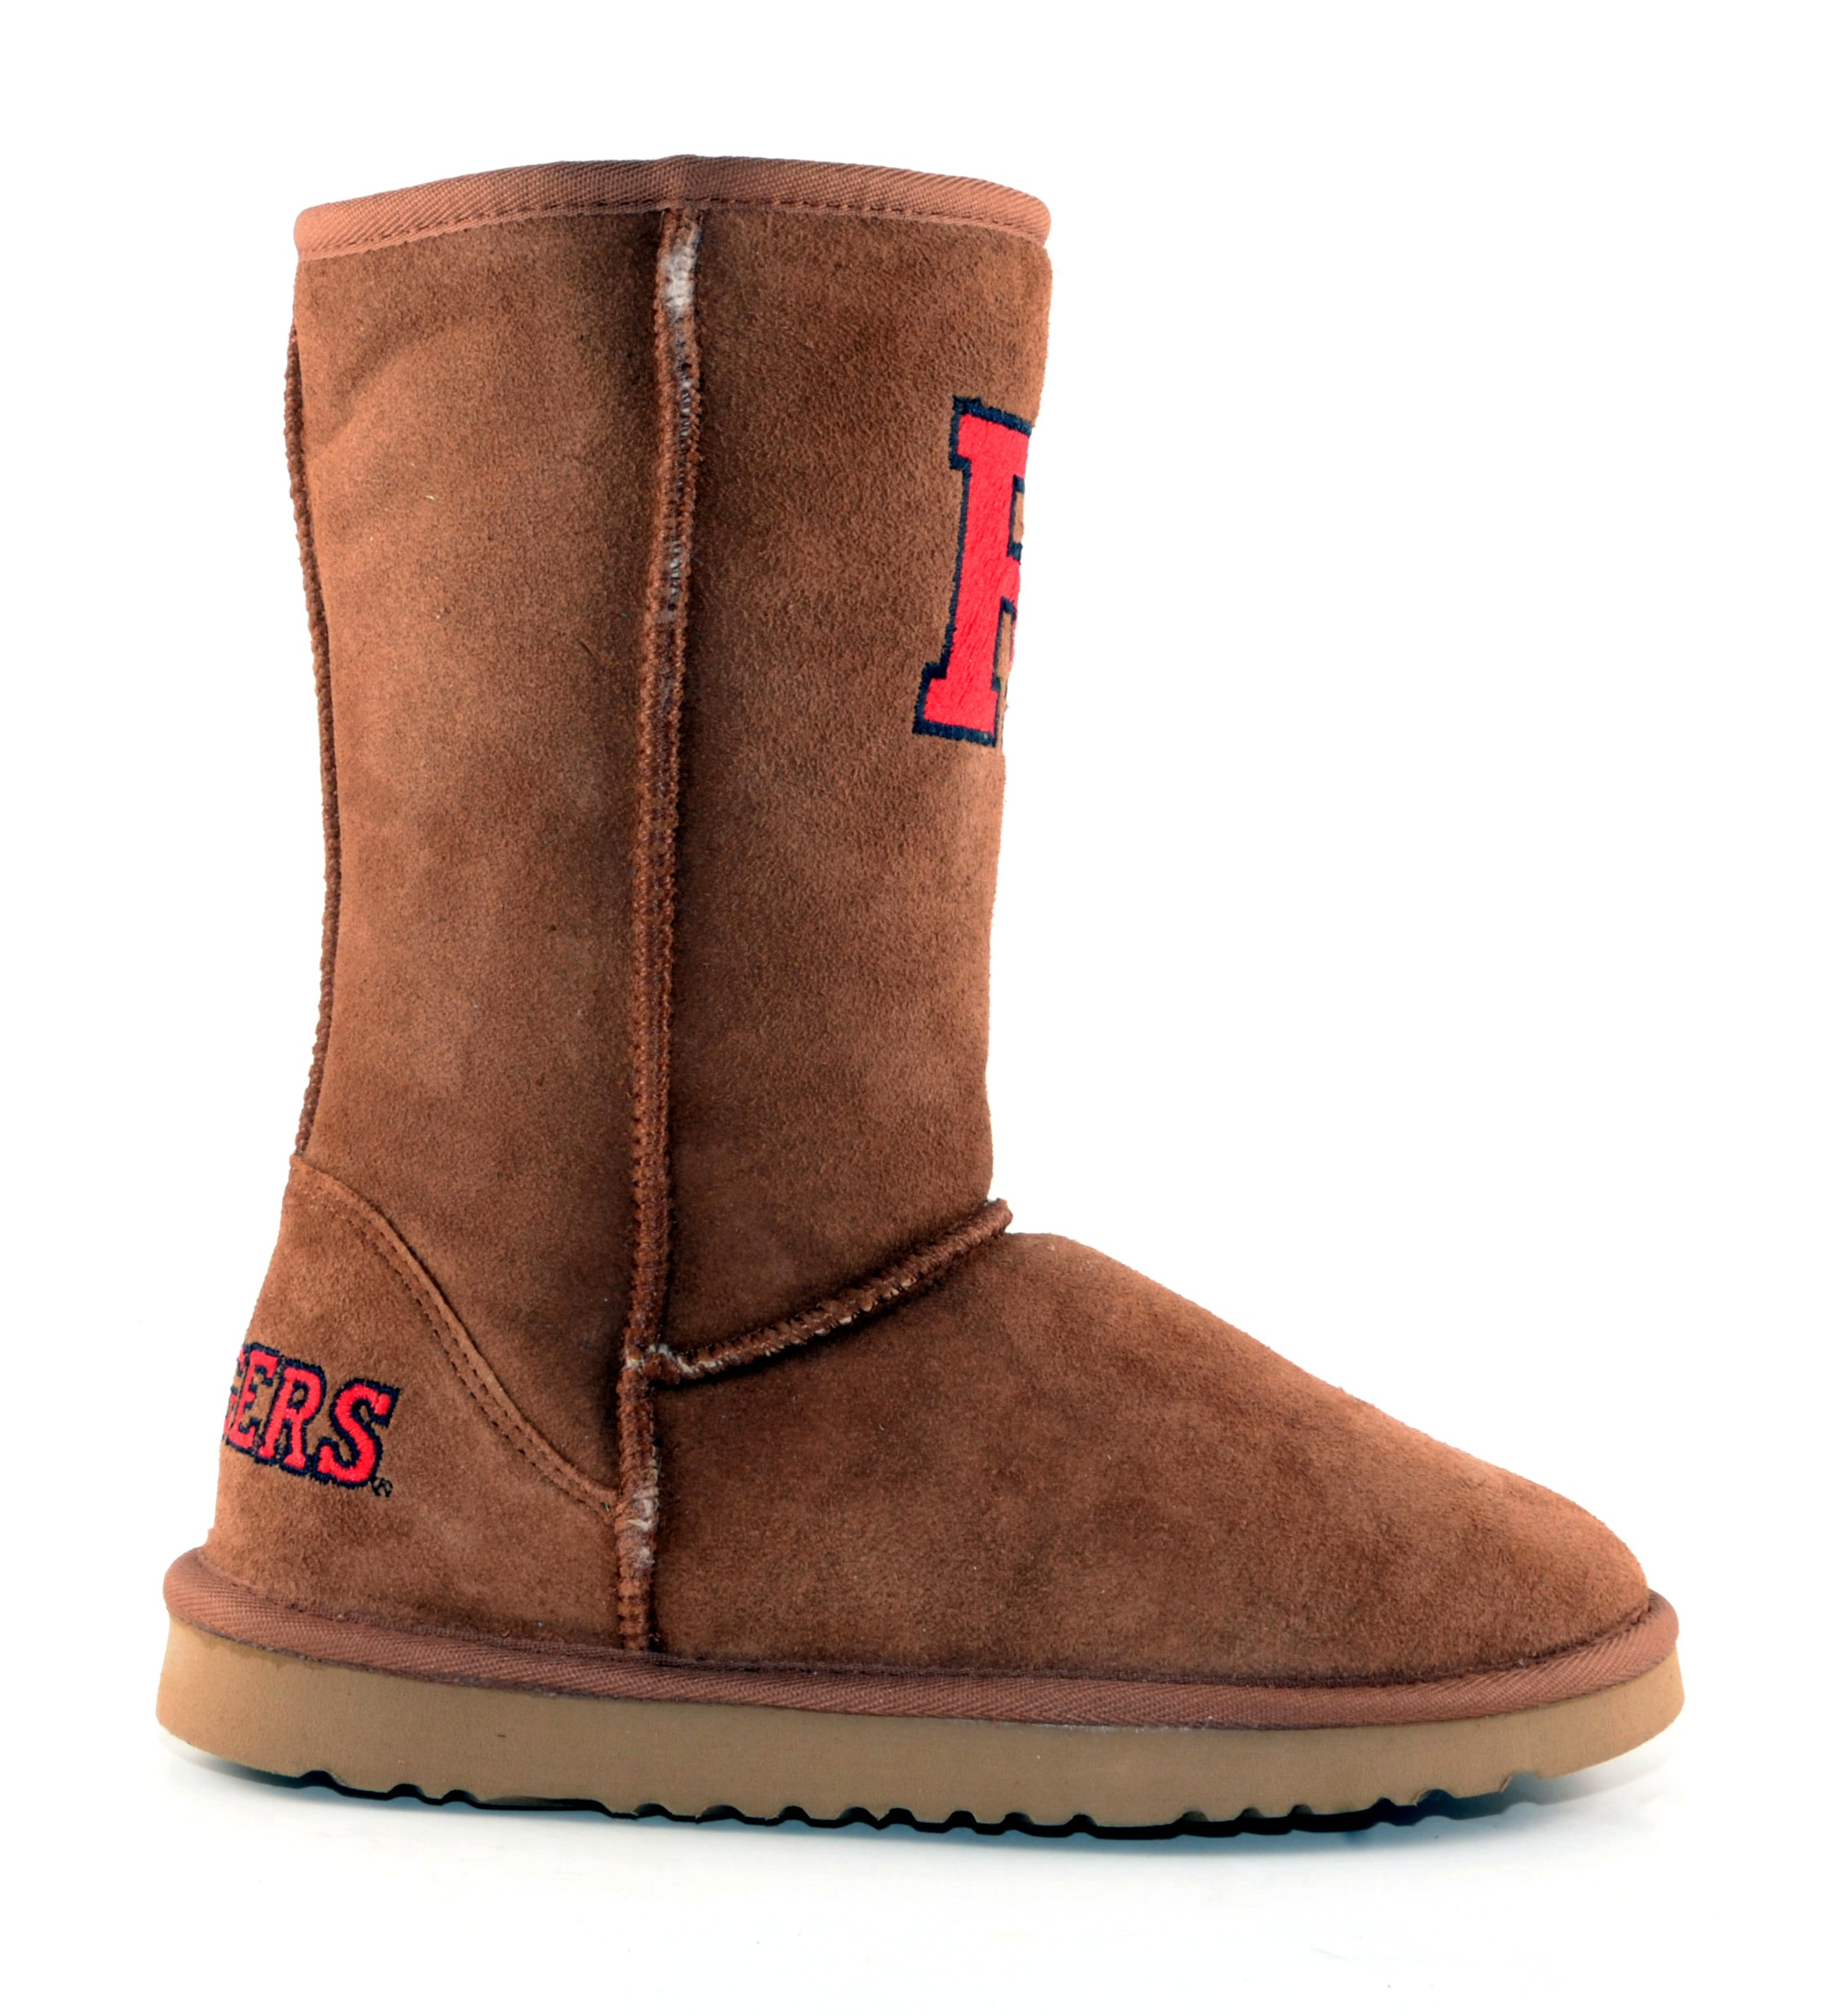 Gameday NEW Womens Hickory Rutgers Lined Short Classic Roadie Boots (Size 10)